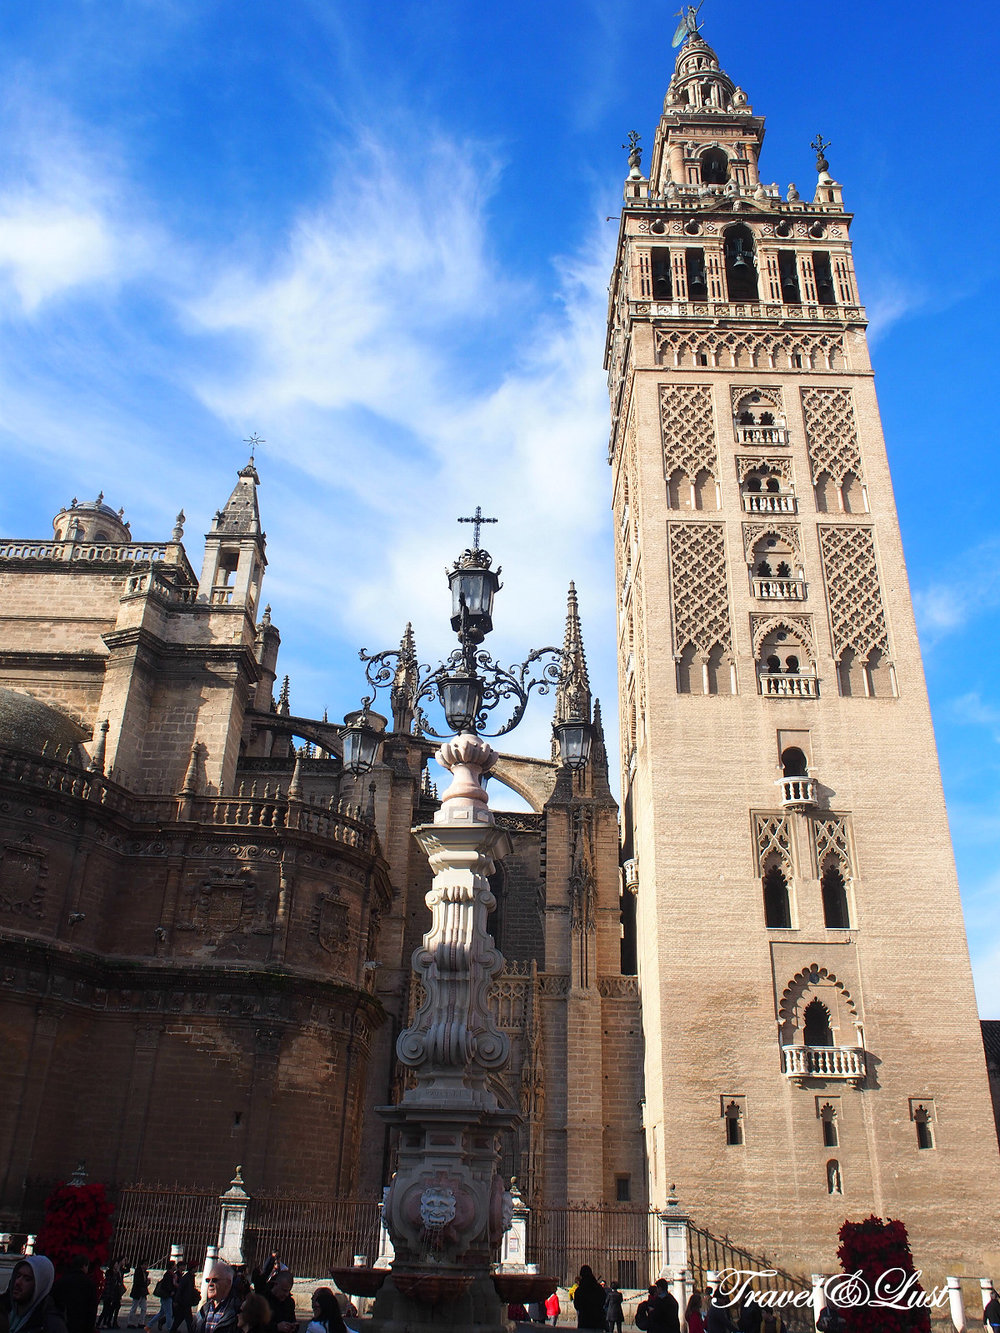 Skip the long lines at the Seville Cathedral when buying the ticket first at the Church of El Salvador (Seville's second largest church). This will allow you for a combined ticket to both churches.